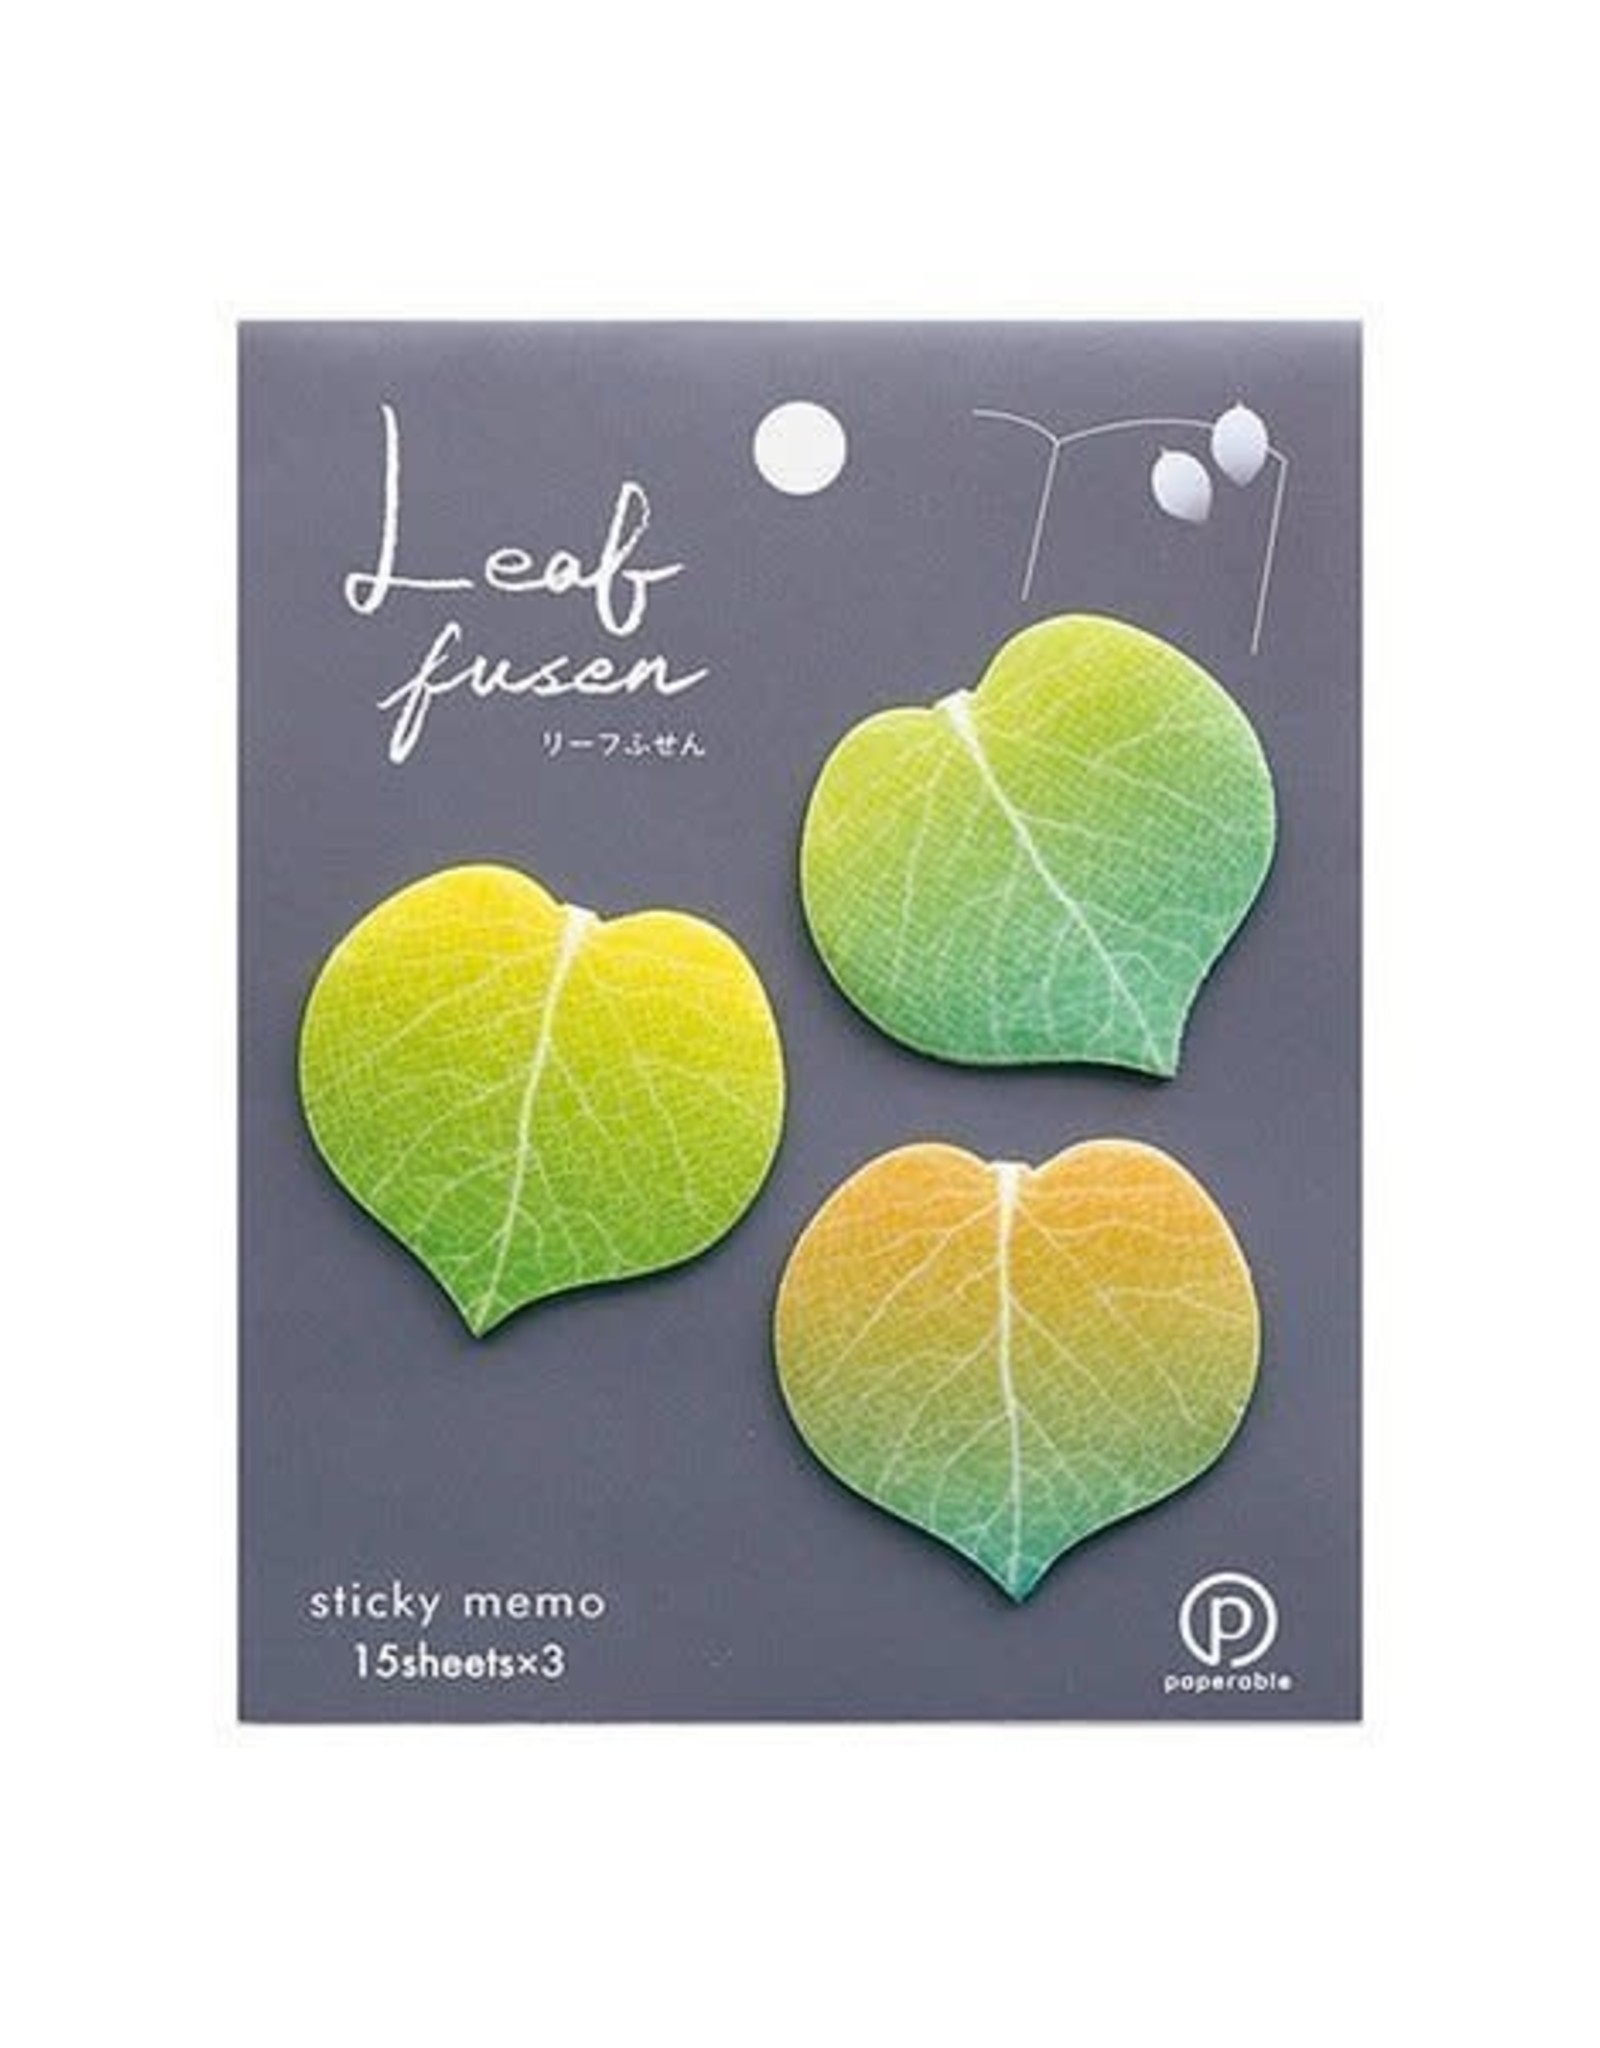 Paperable Paperable Leaf Stickies